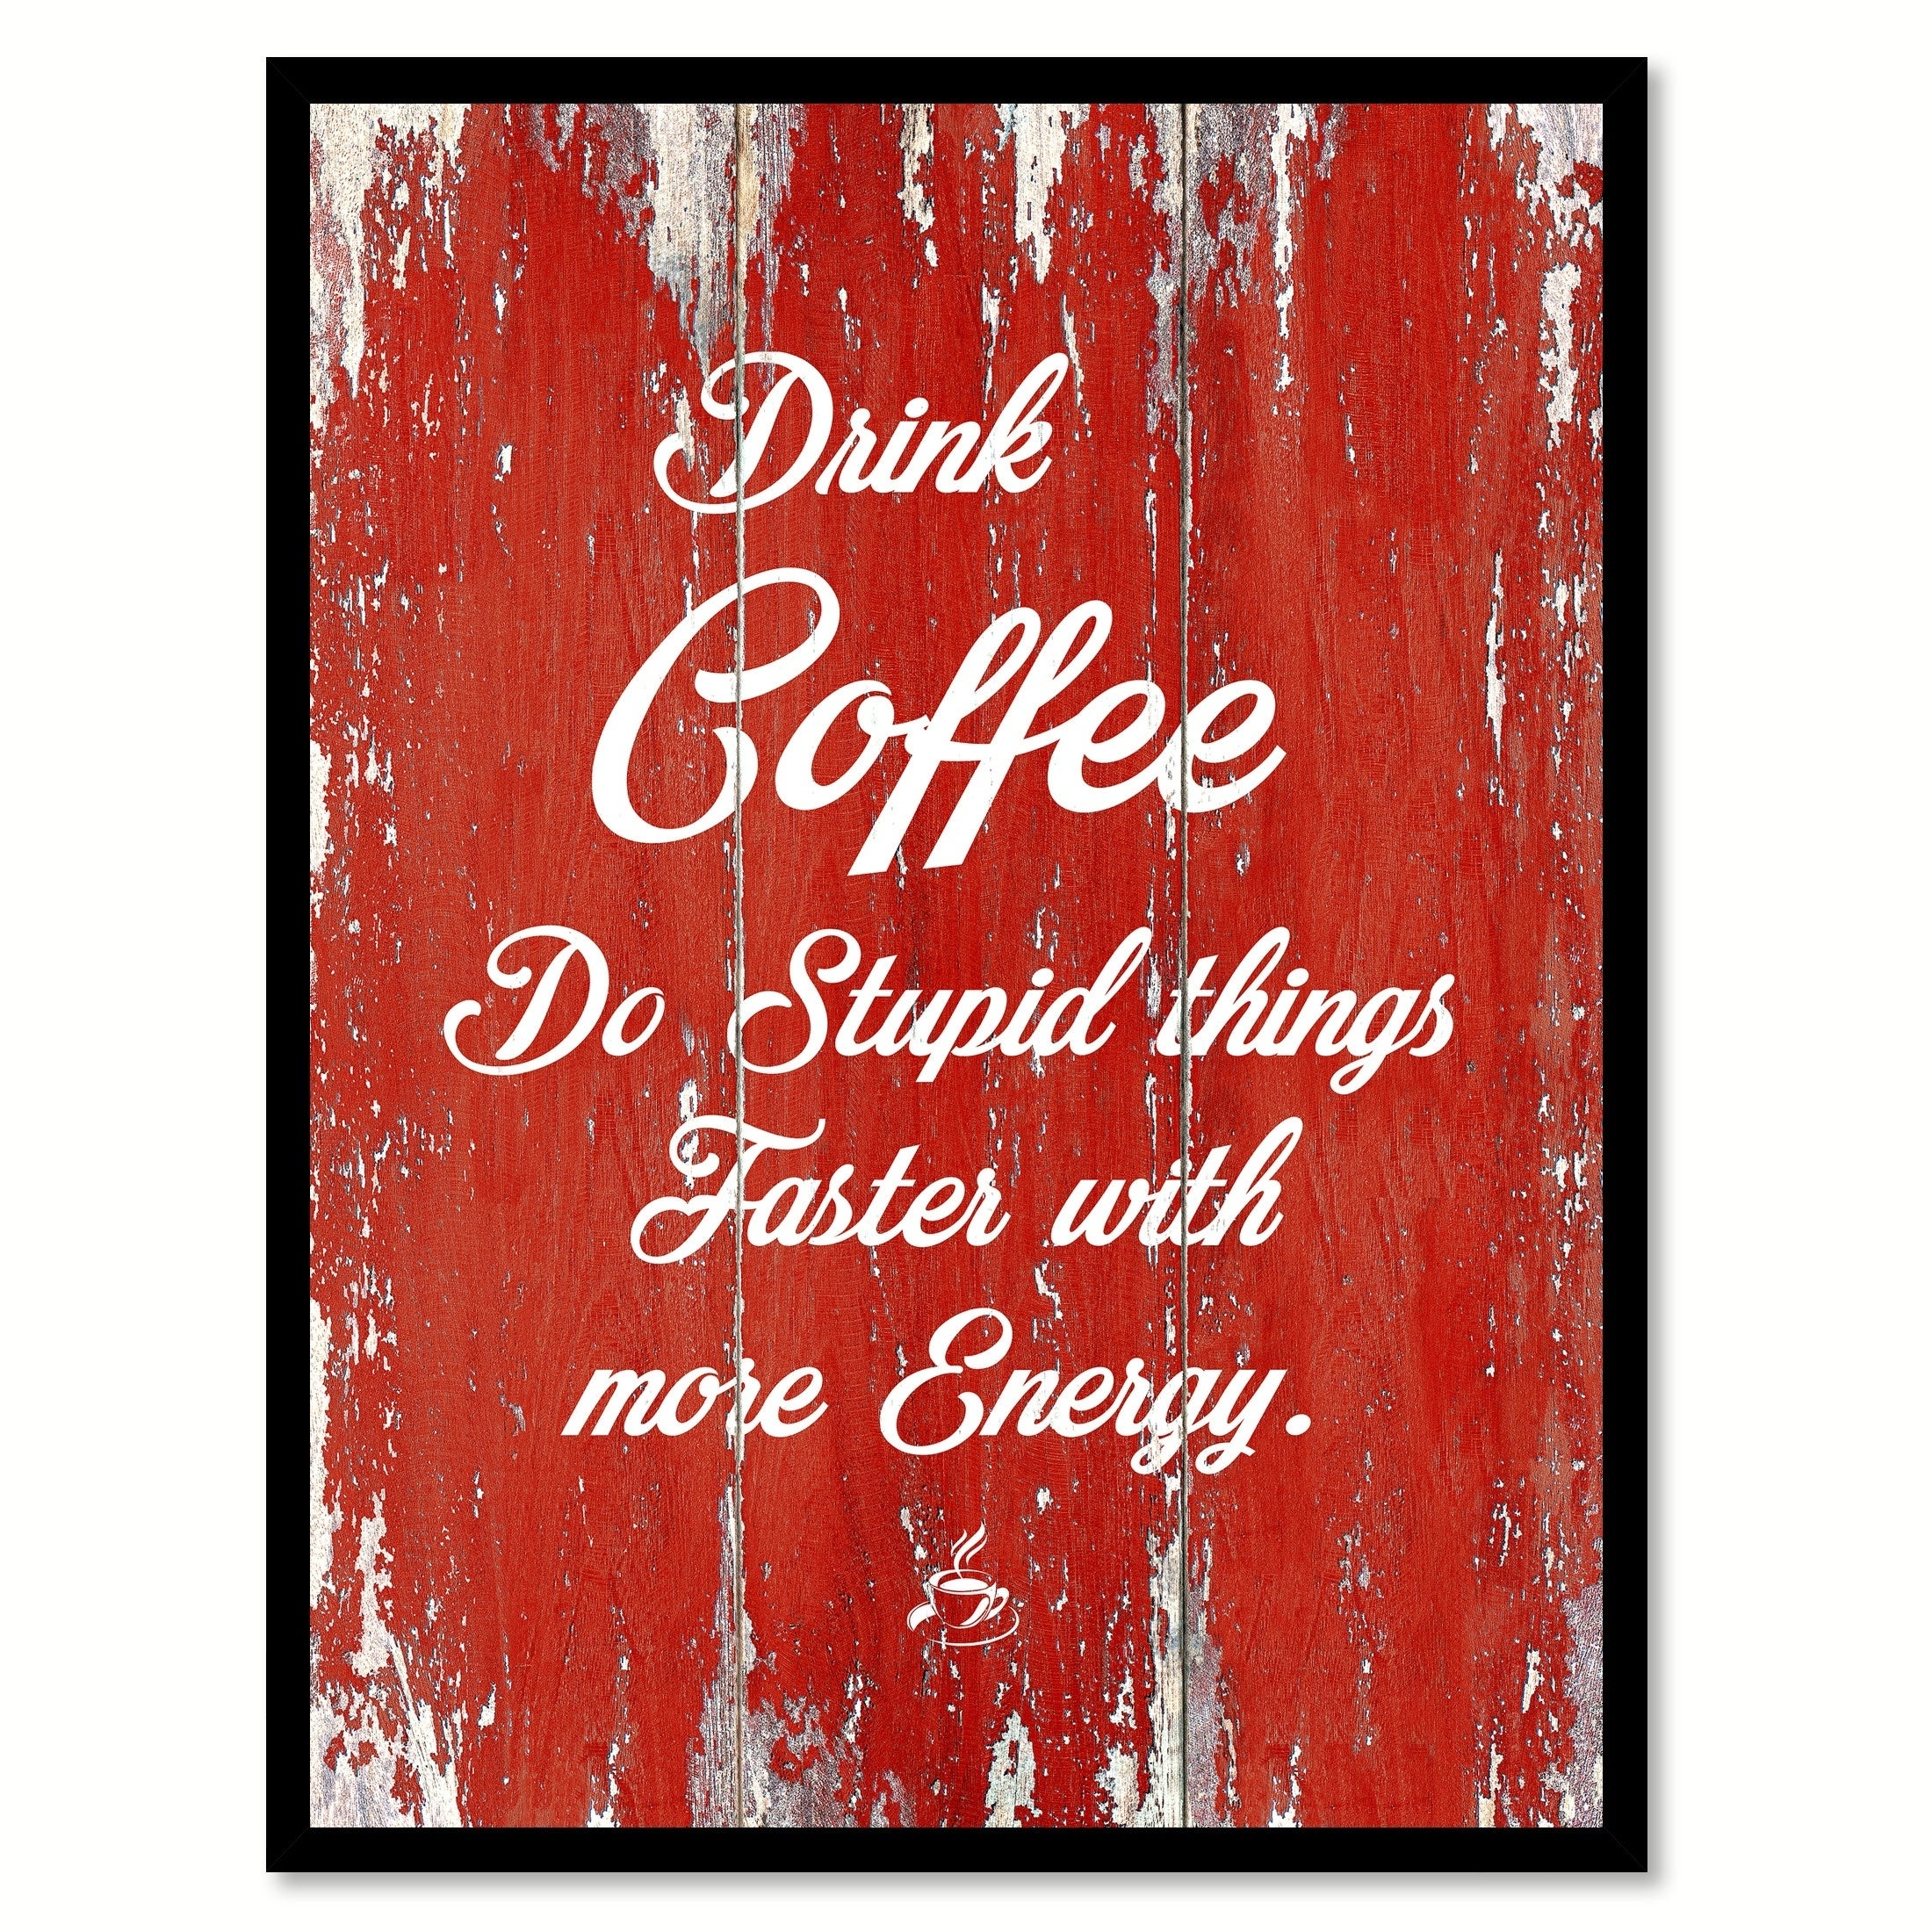 Drink Coffee Do Stupid Things Faster With More Energy Saying Canvas Print  Picture Frame Home Decor Wall Art